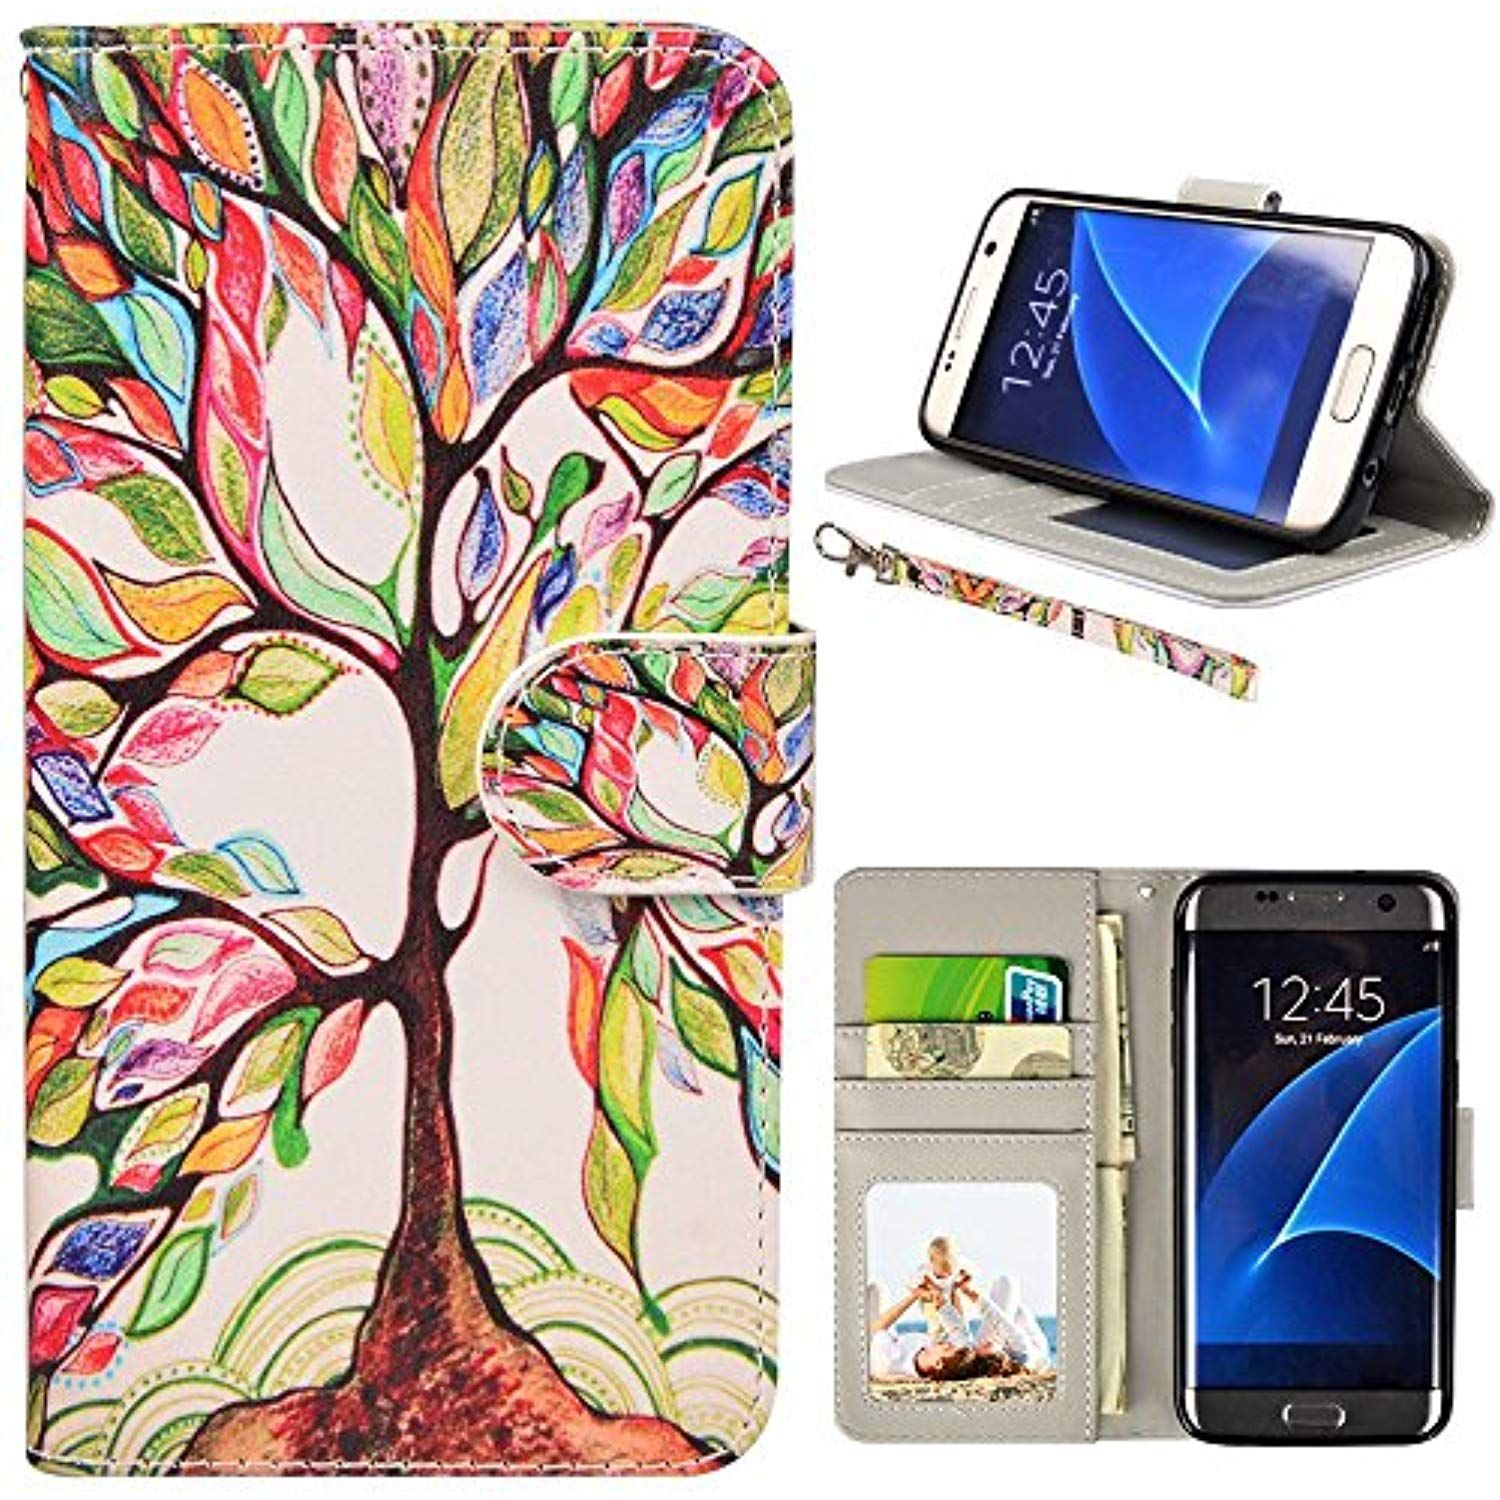 S7 Case Urspeedteklive Galaxy S7 Wallet Case Premium Pu Leather Wristlet Flip Case Cover With Card Slots A Samsung Tablet Case Leather Stand Protective Cases